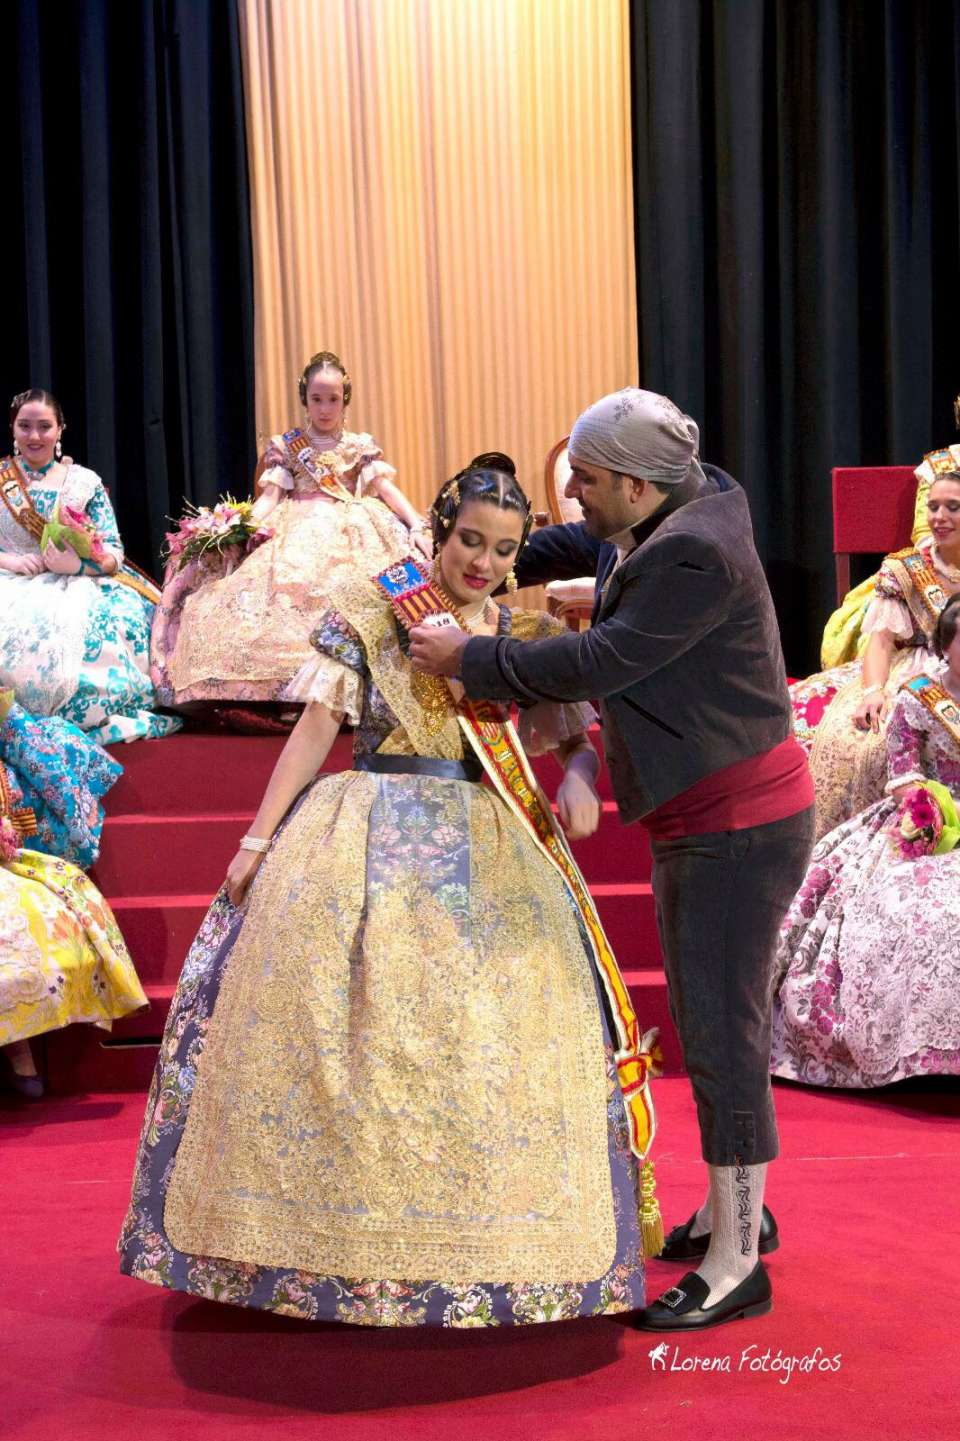 The Falla Benicalap exalted their Falleras Mayores for the Fallas 2018